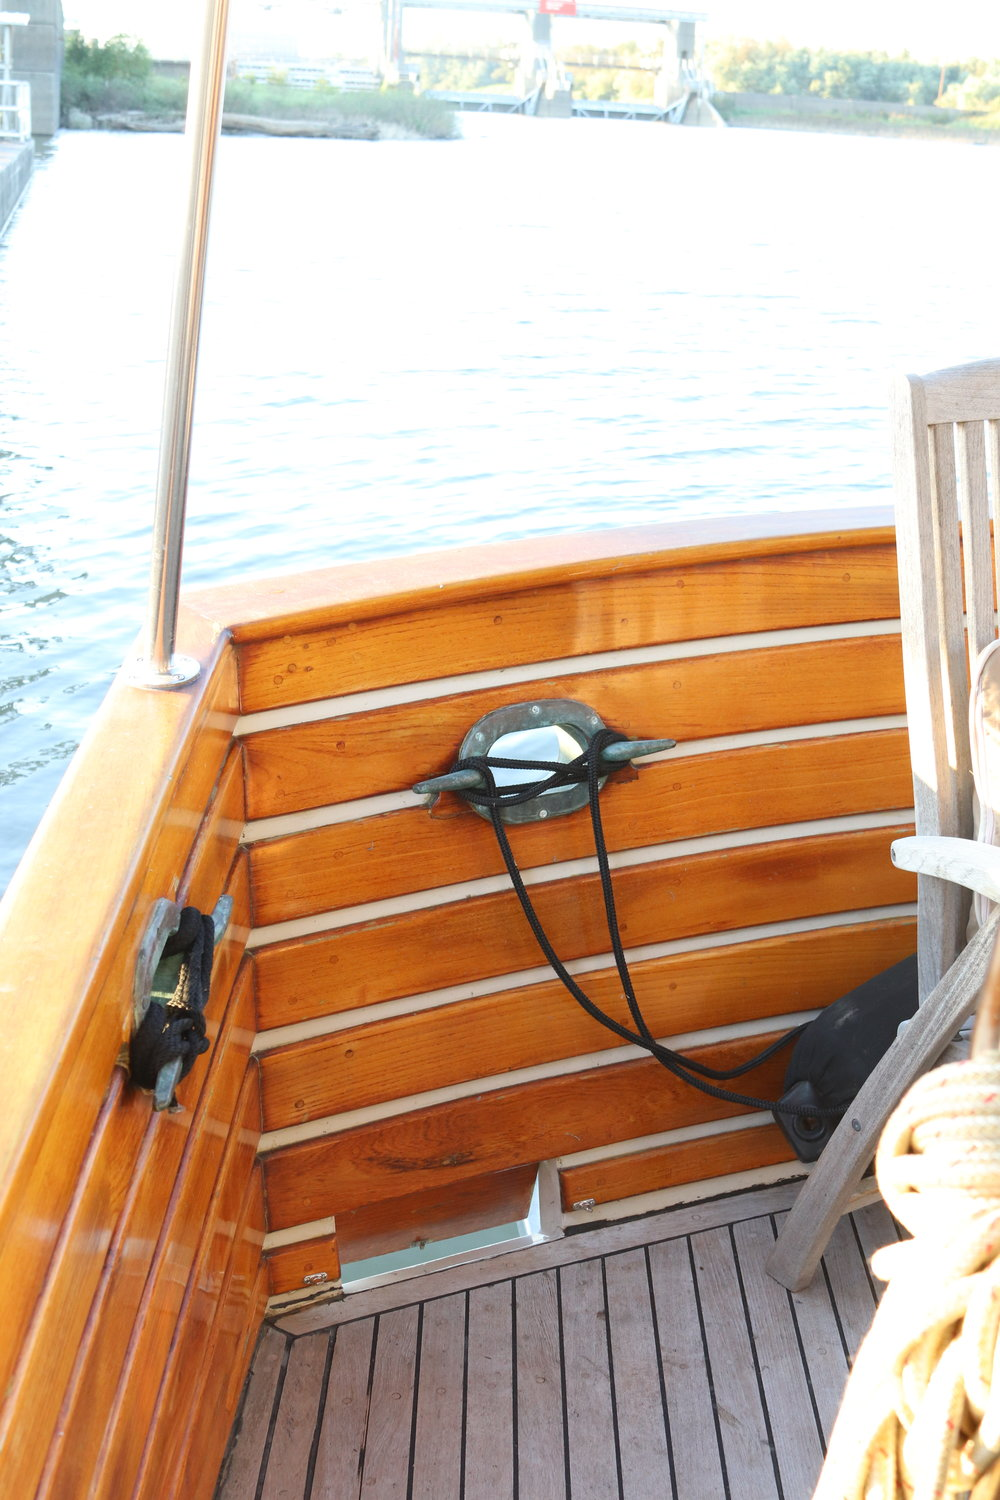 For context, the carp have to leap up and over the deck railing to make it onto the deck - quite a feat. The stern scupper is the the small opening at the bottom (after it had been cleaned).